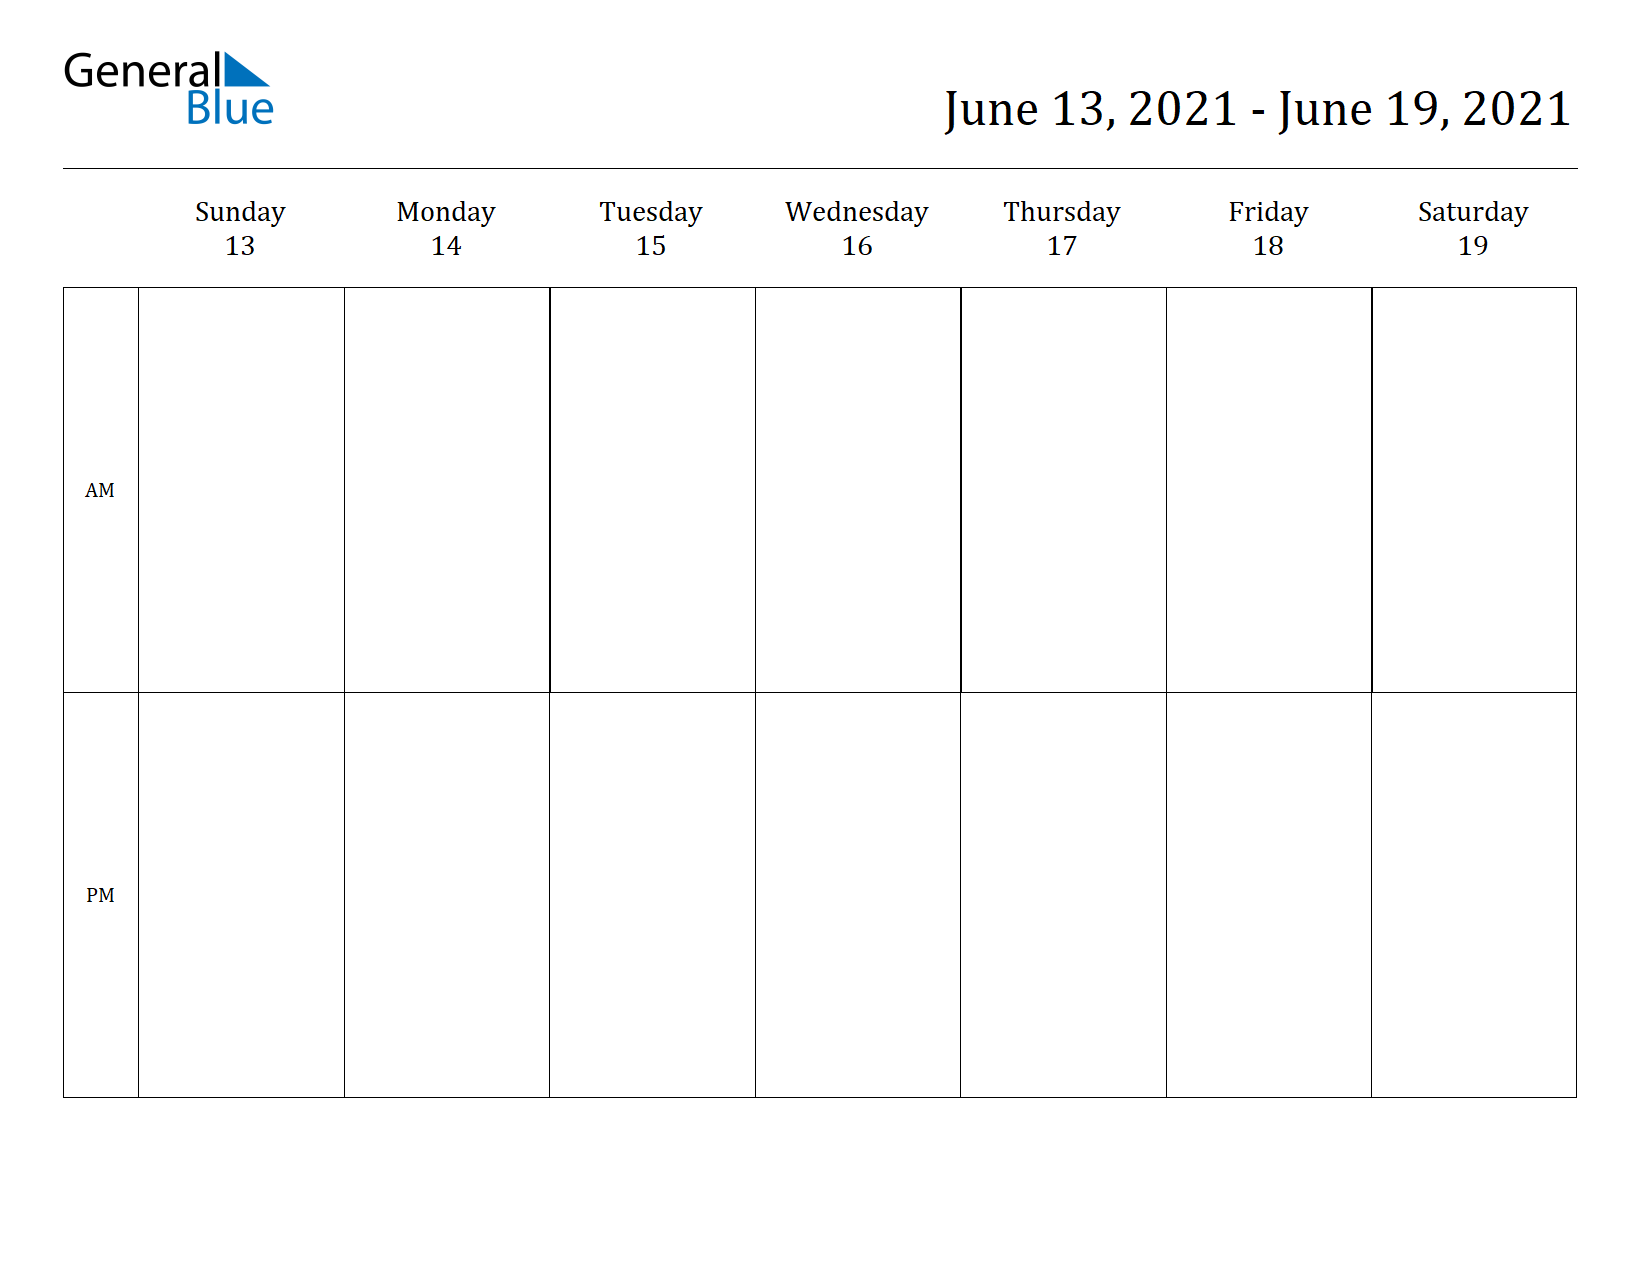 Weekly Calendar for Jun 13, 2021 to Jun 19, 2021